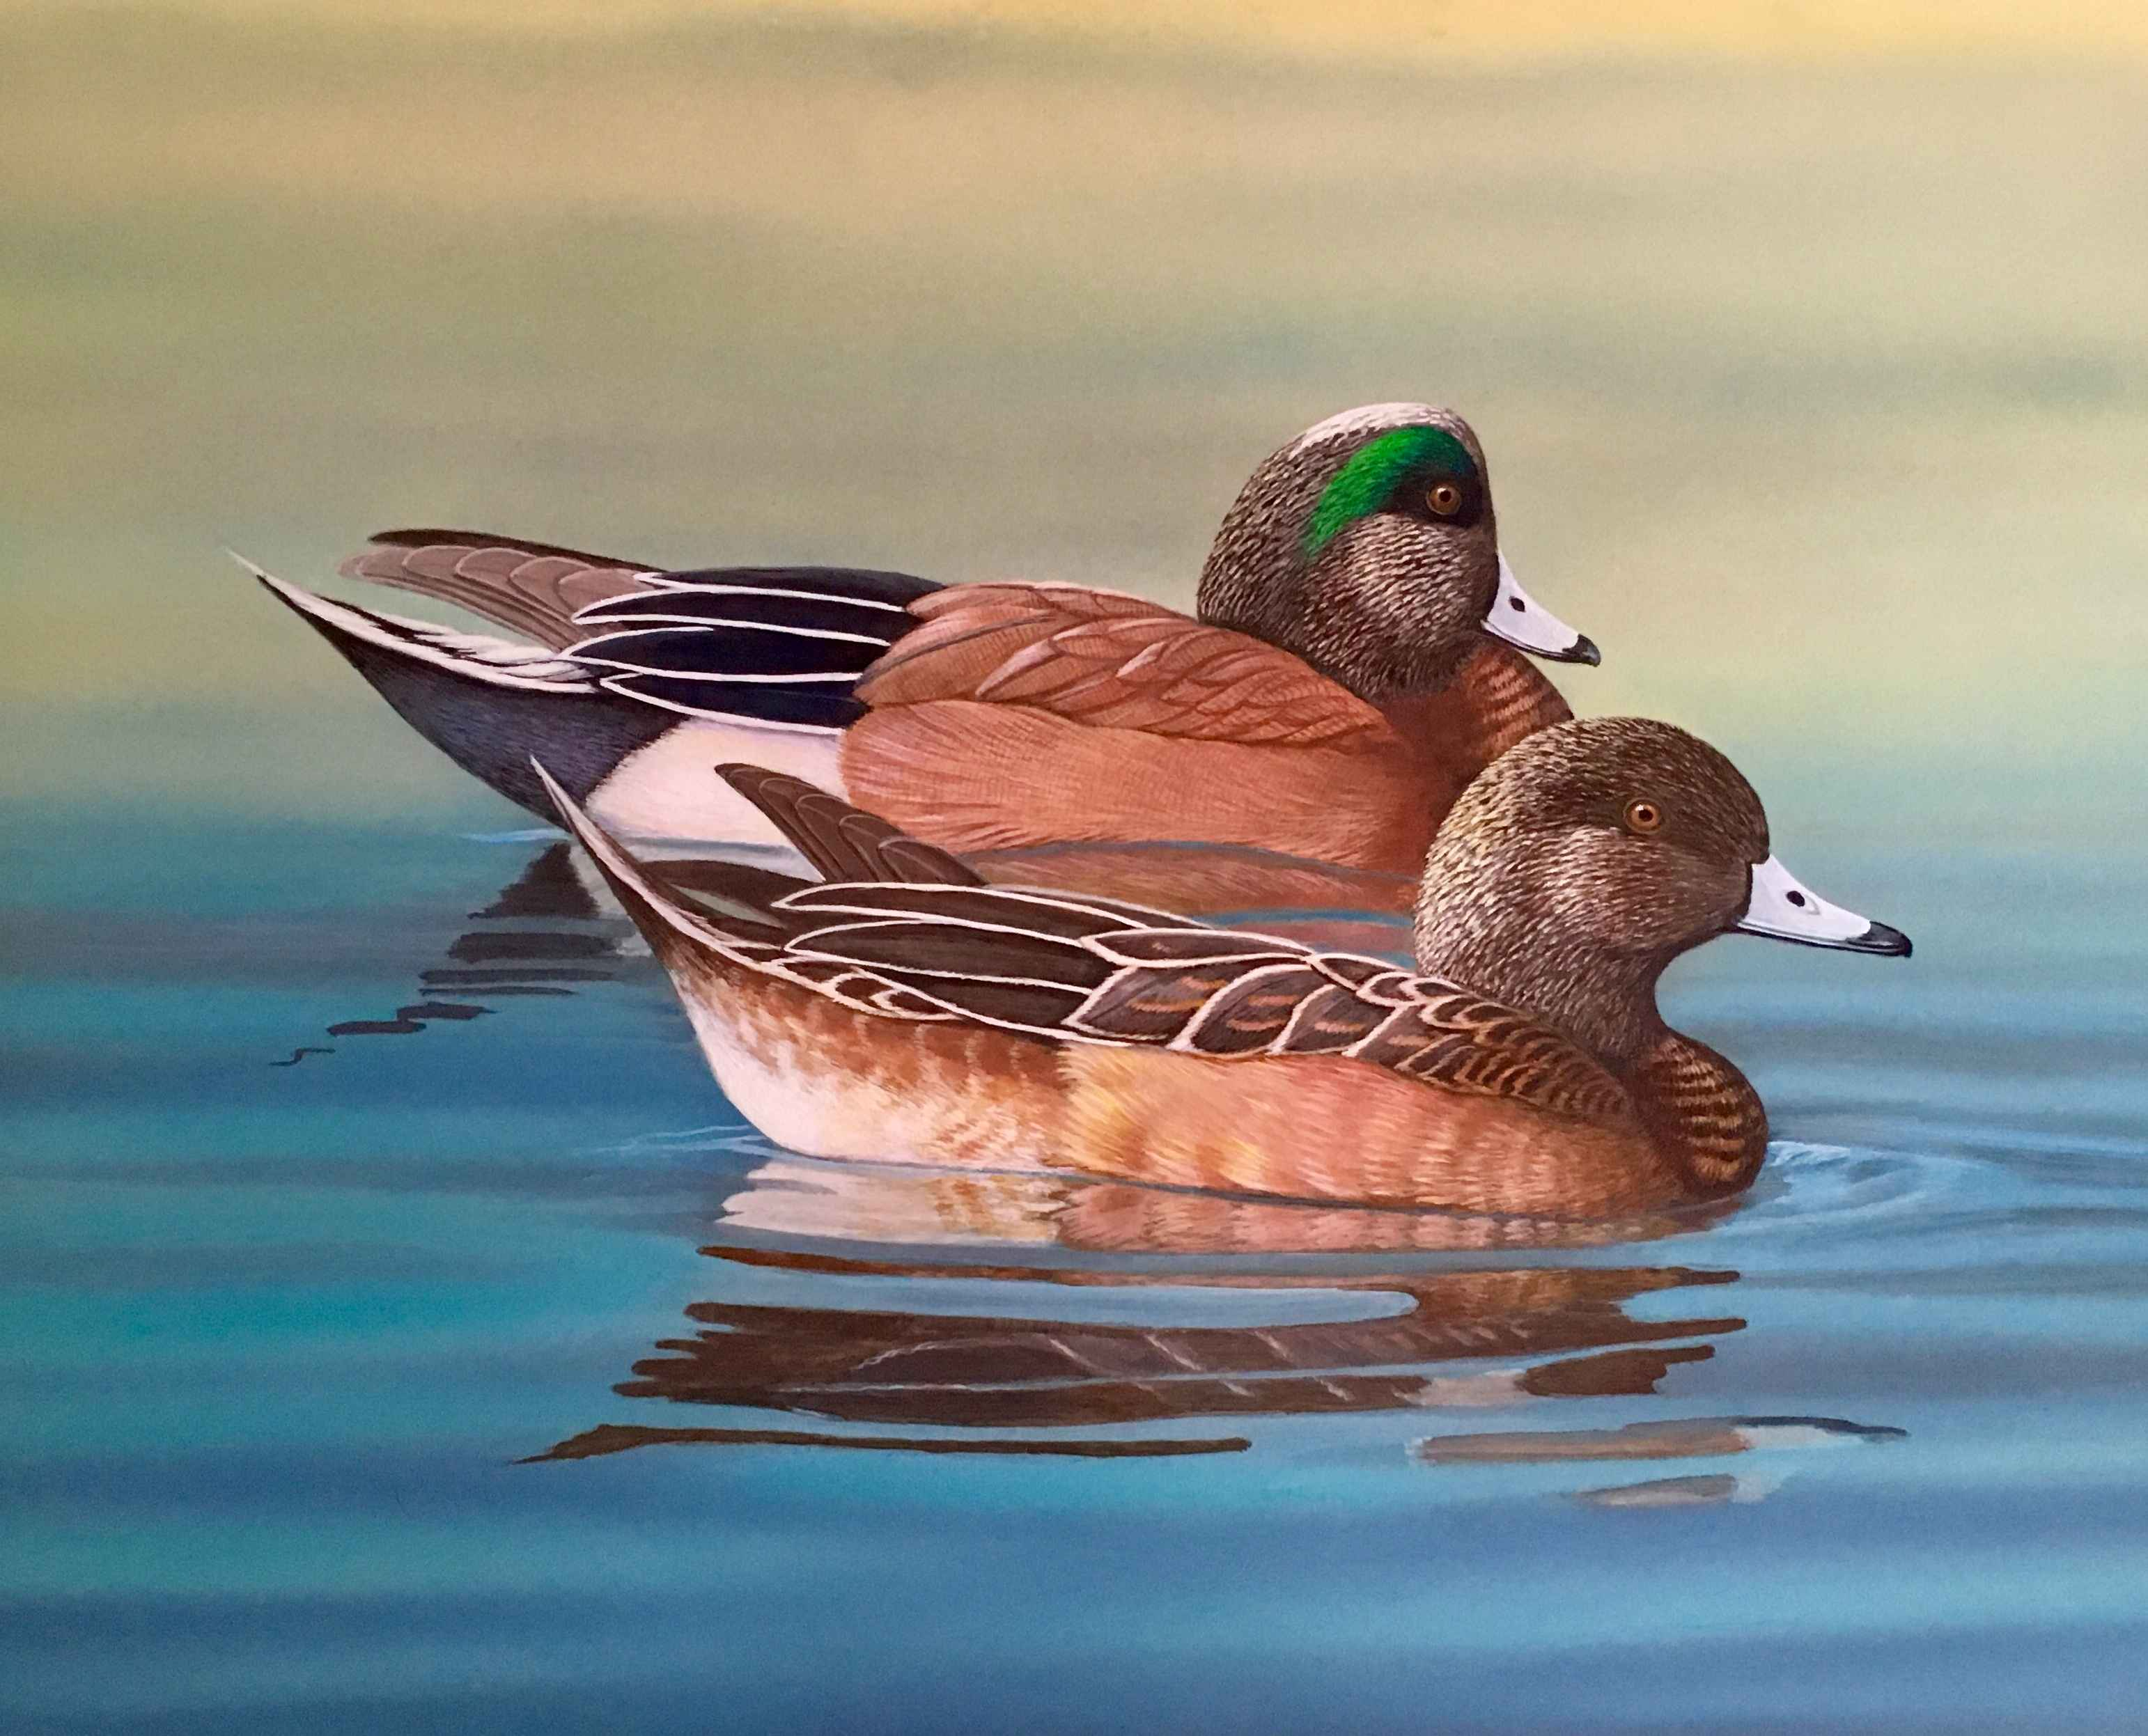 2019 Oregon Waterfowl Stamp Winner - 2nd Place